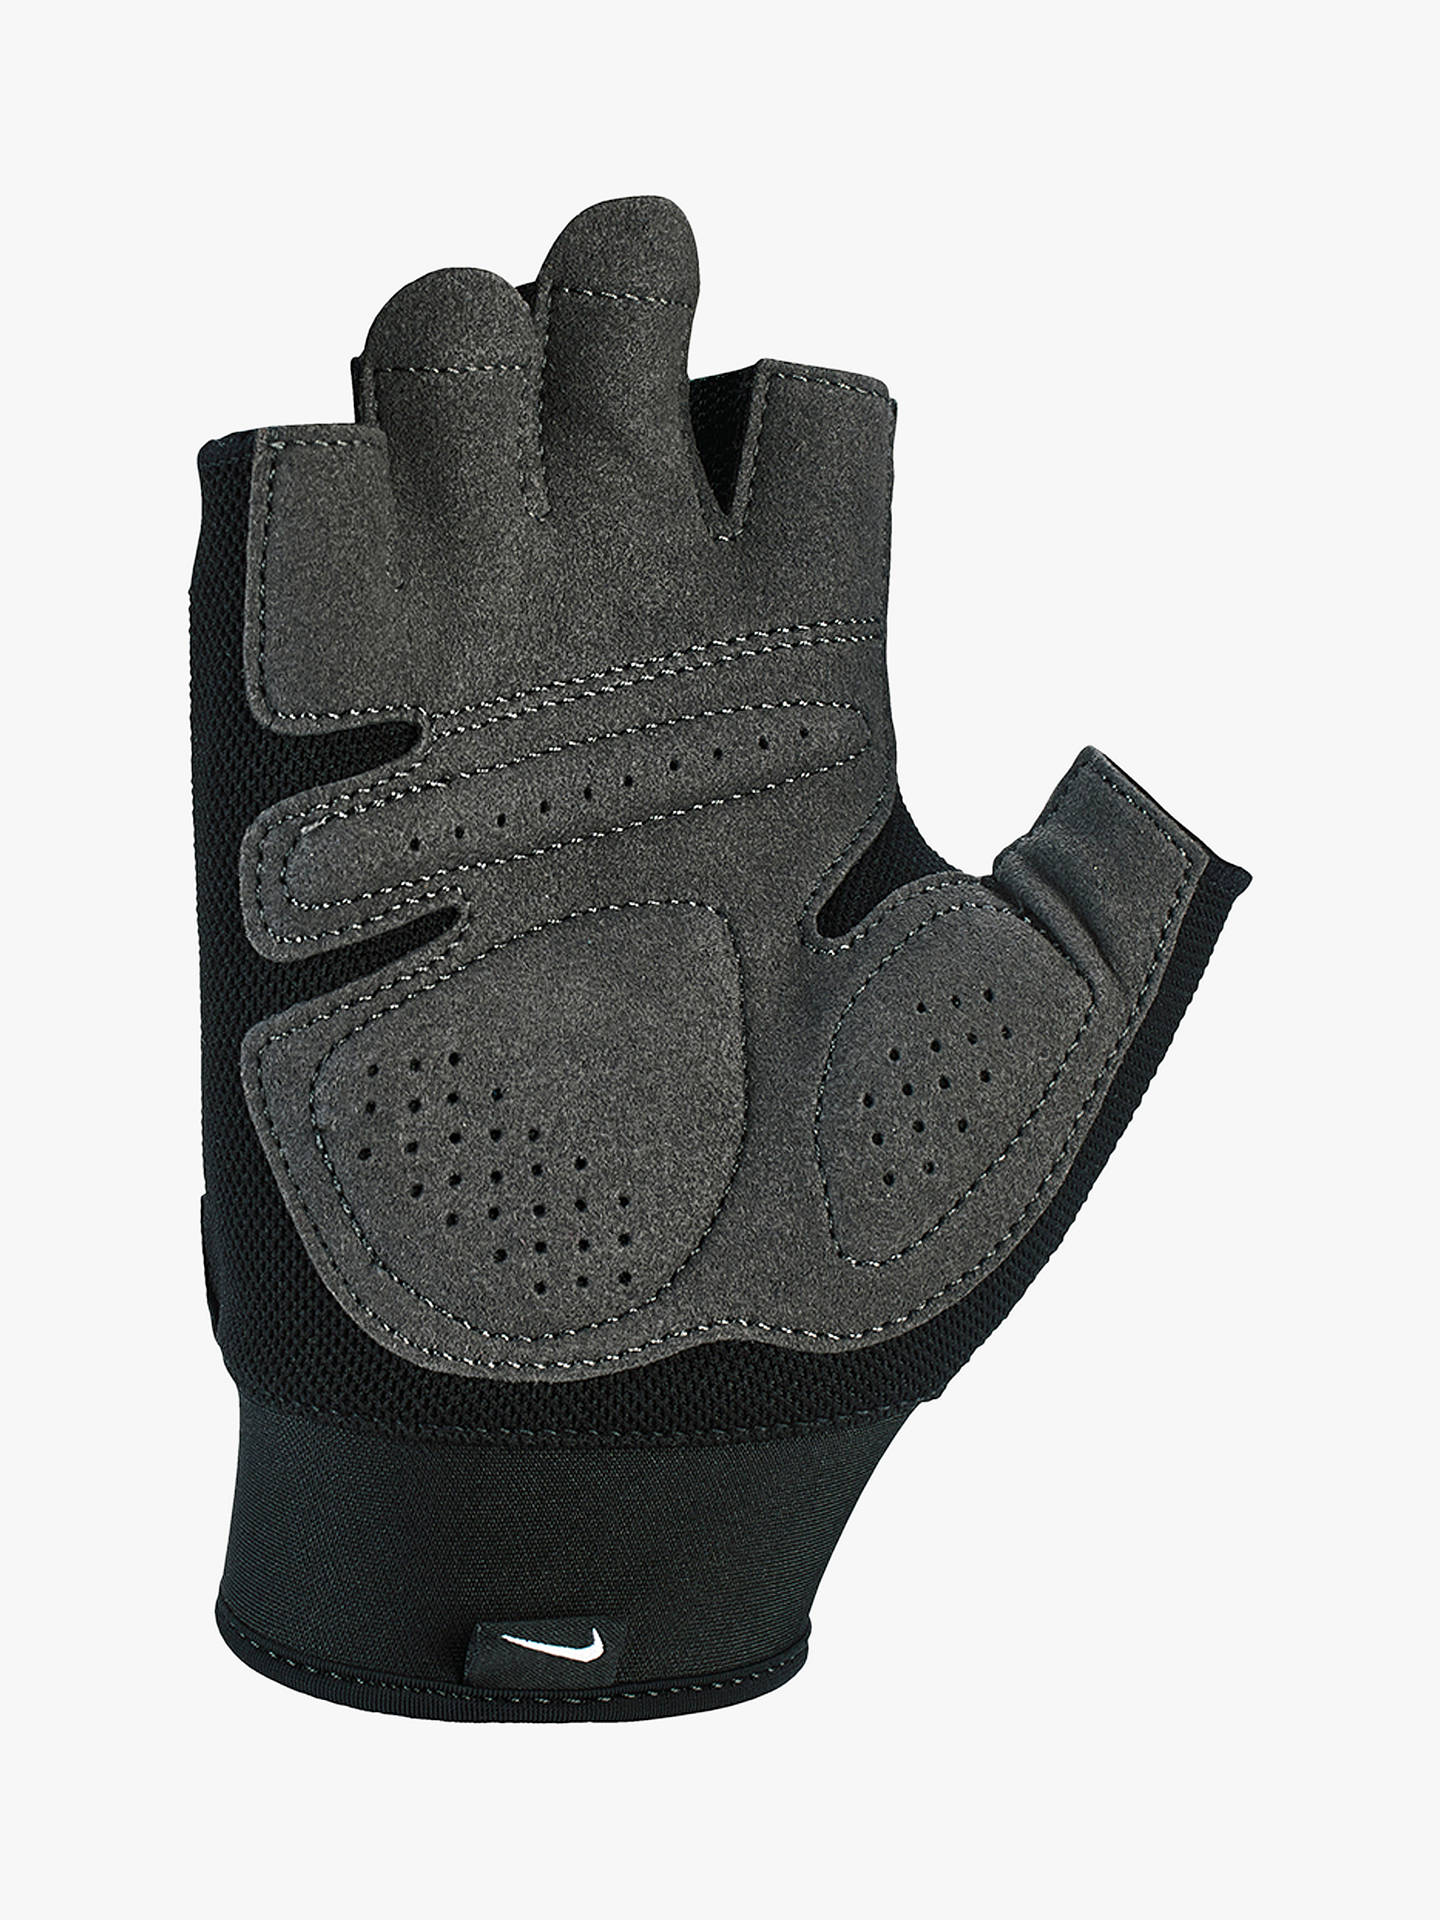 best sneakers be915 27657 ... Buy Nike Extreme Fitness Training Gloves, Blue Force Black Thunderstorm,  M Online